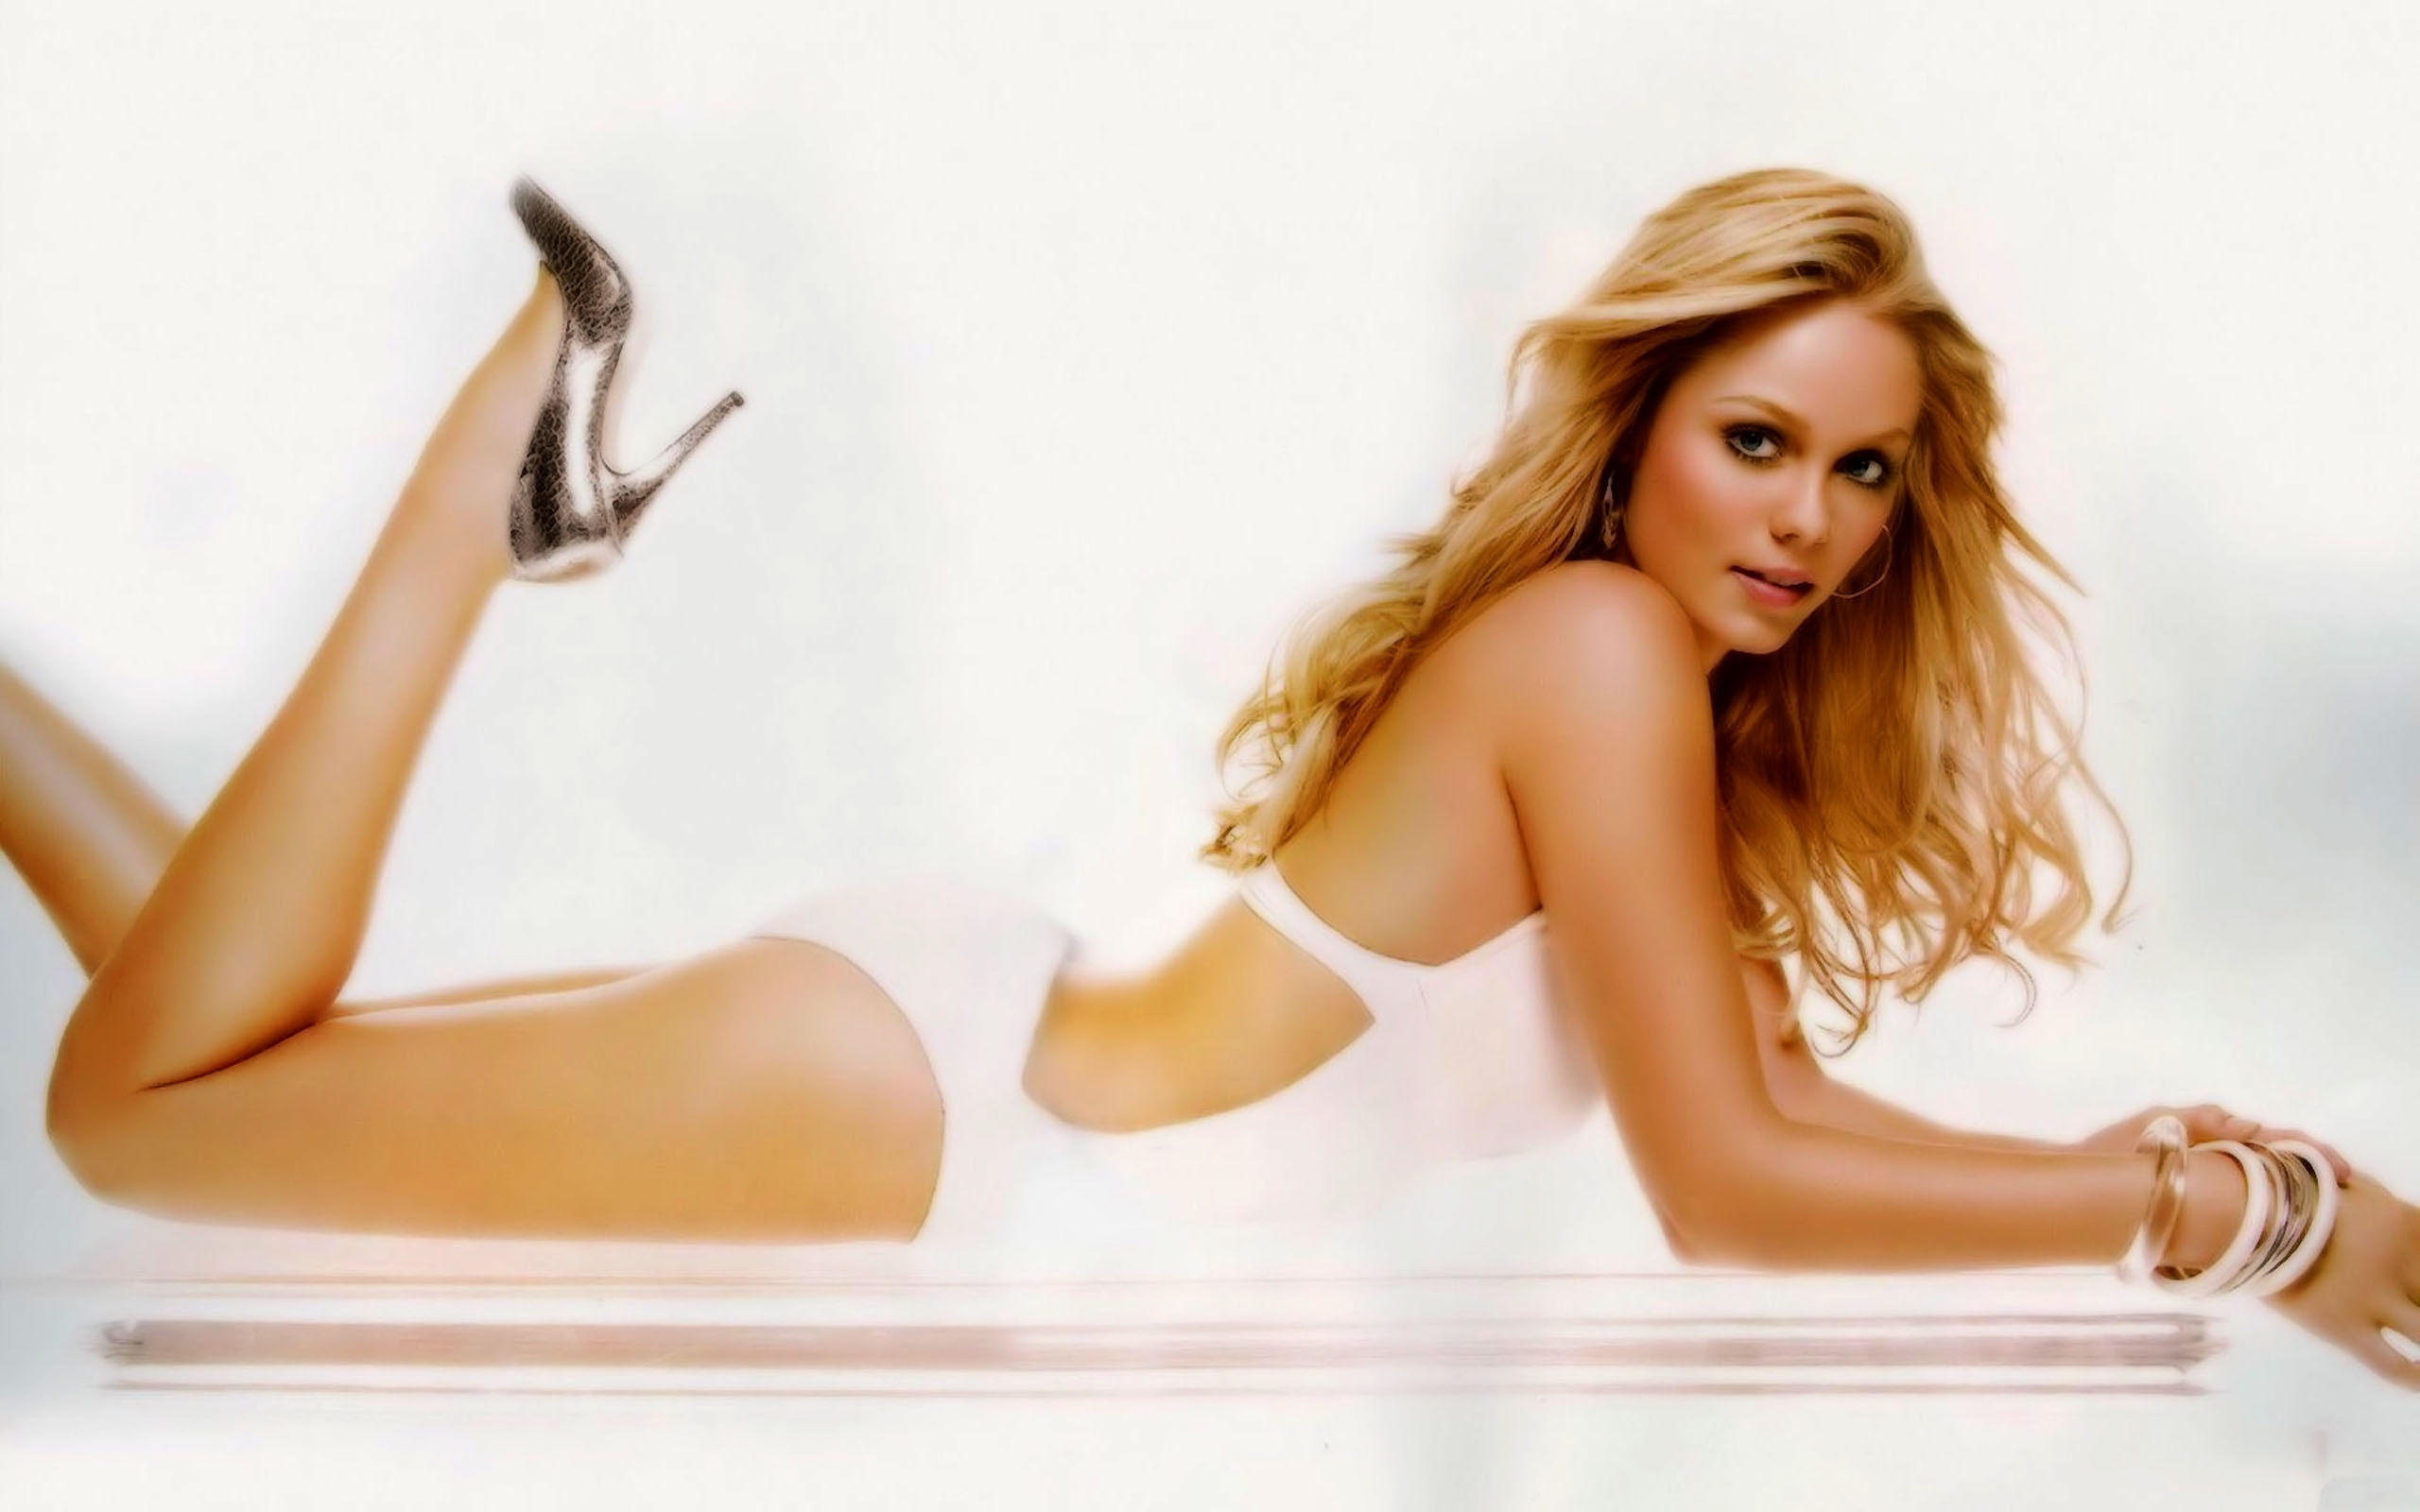 Laura-vandervoort Wallpapers | Desktop Wallpapers - Page 5